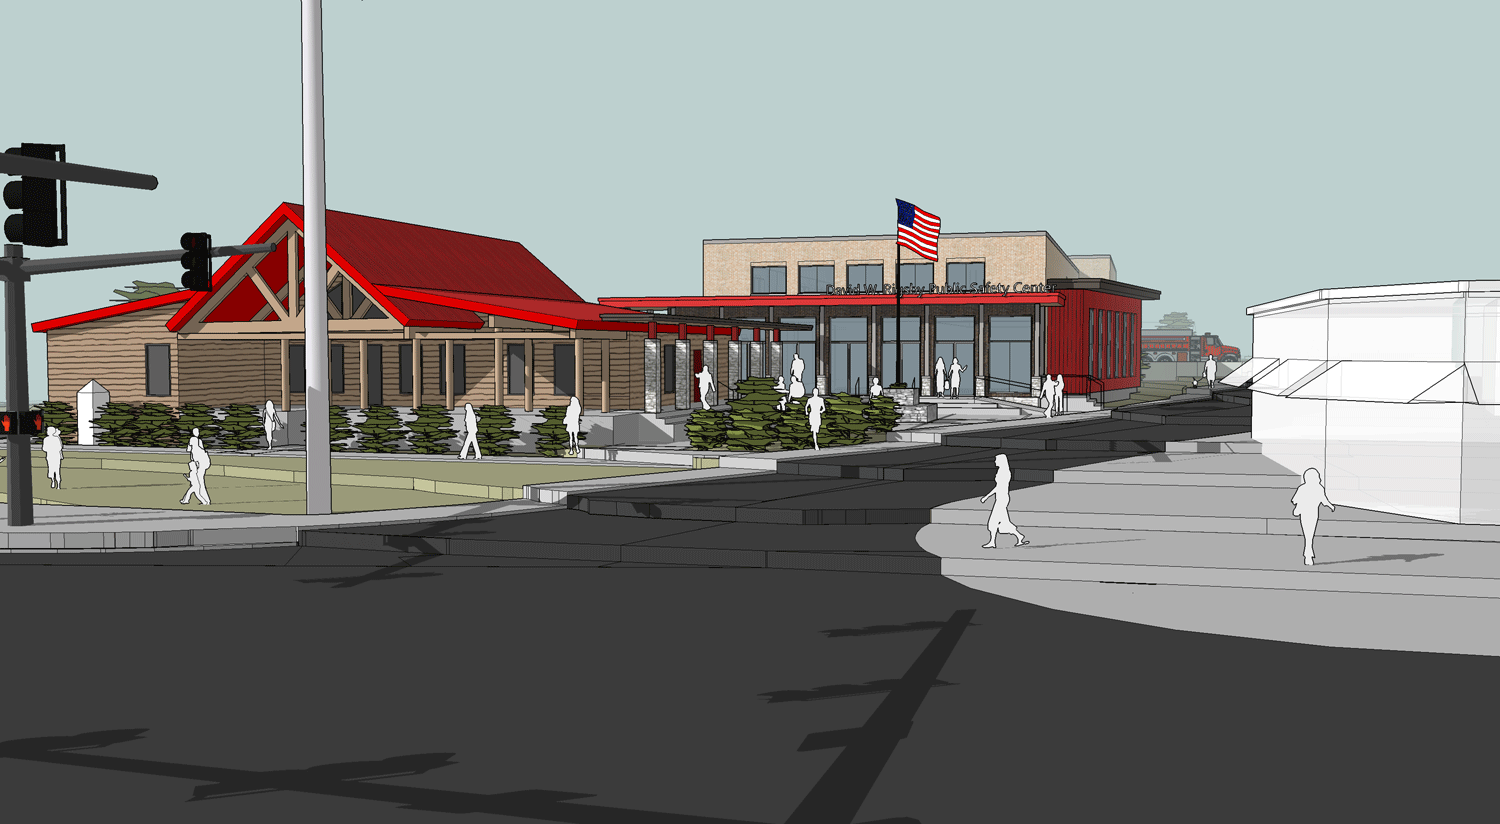 Perspective View of Entrance